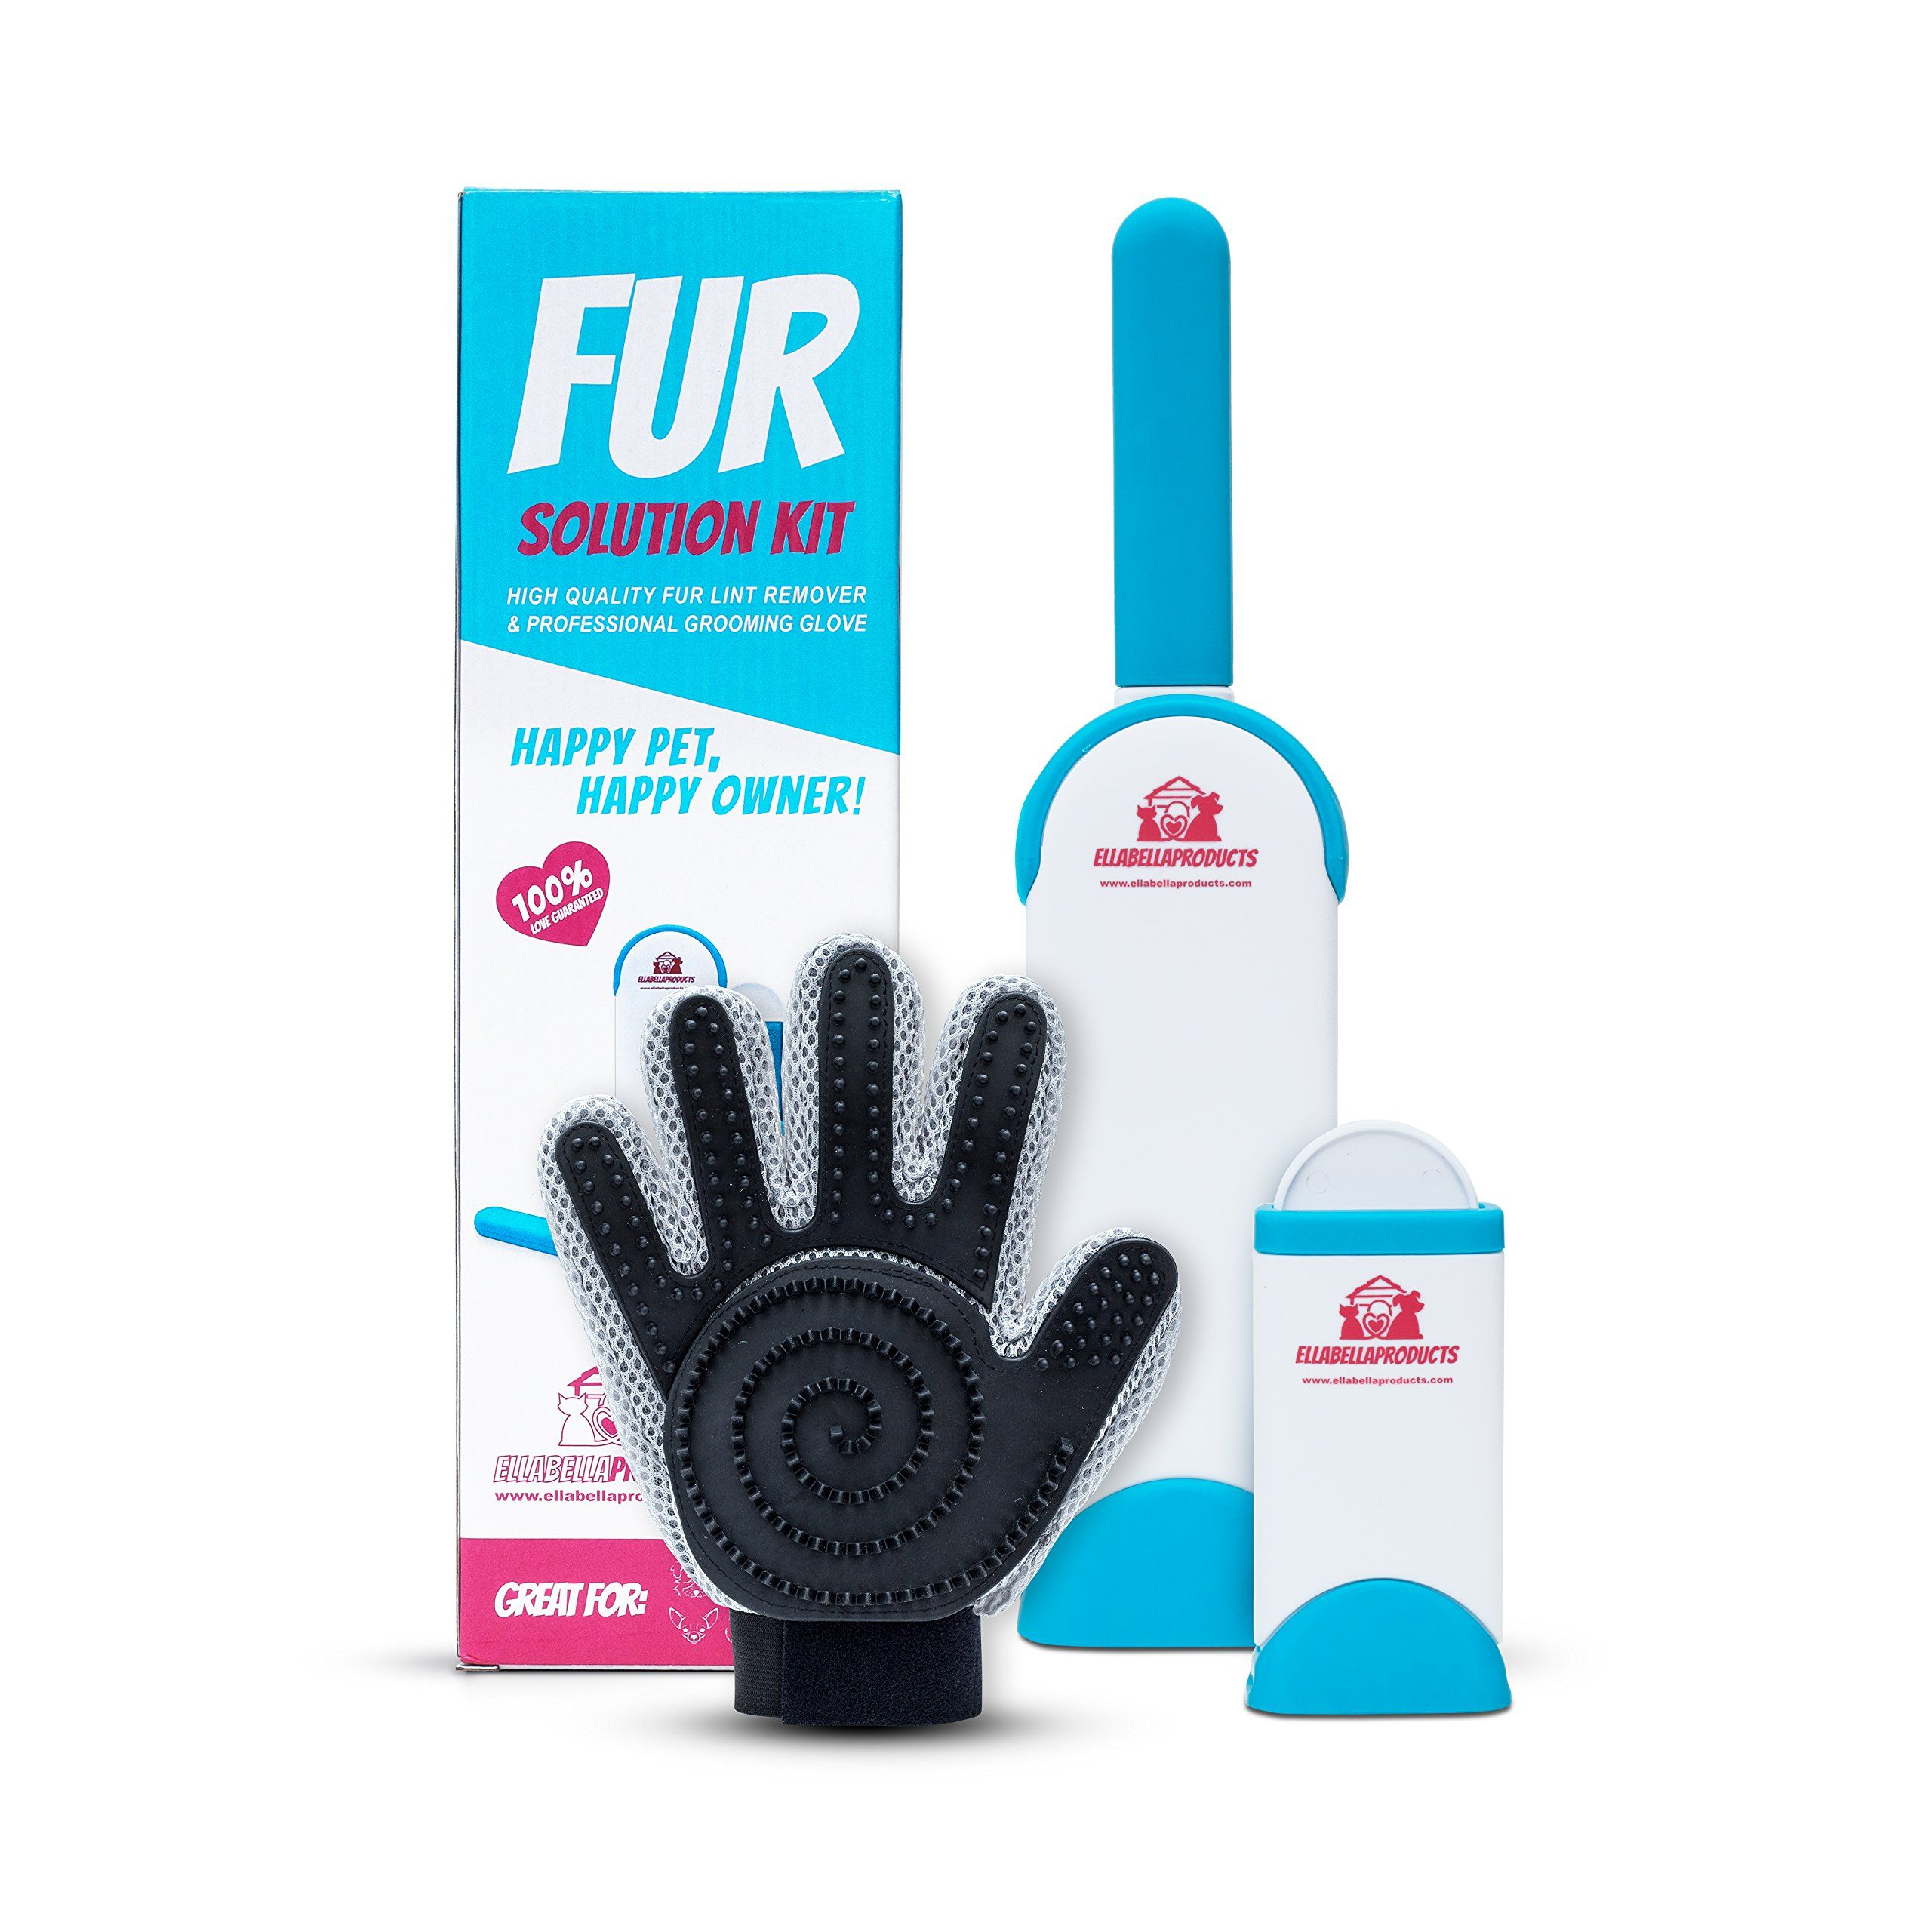 Fur Solution Kit, Fur Happy animals, Lint remover, Solutions